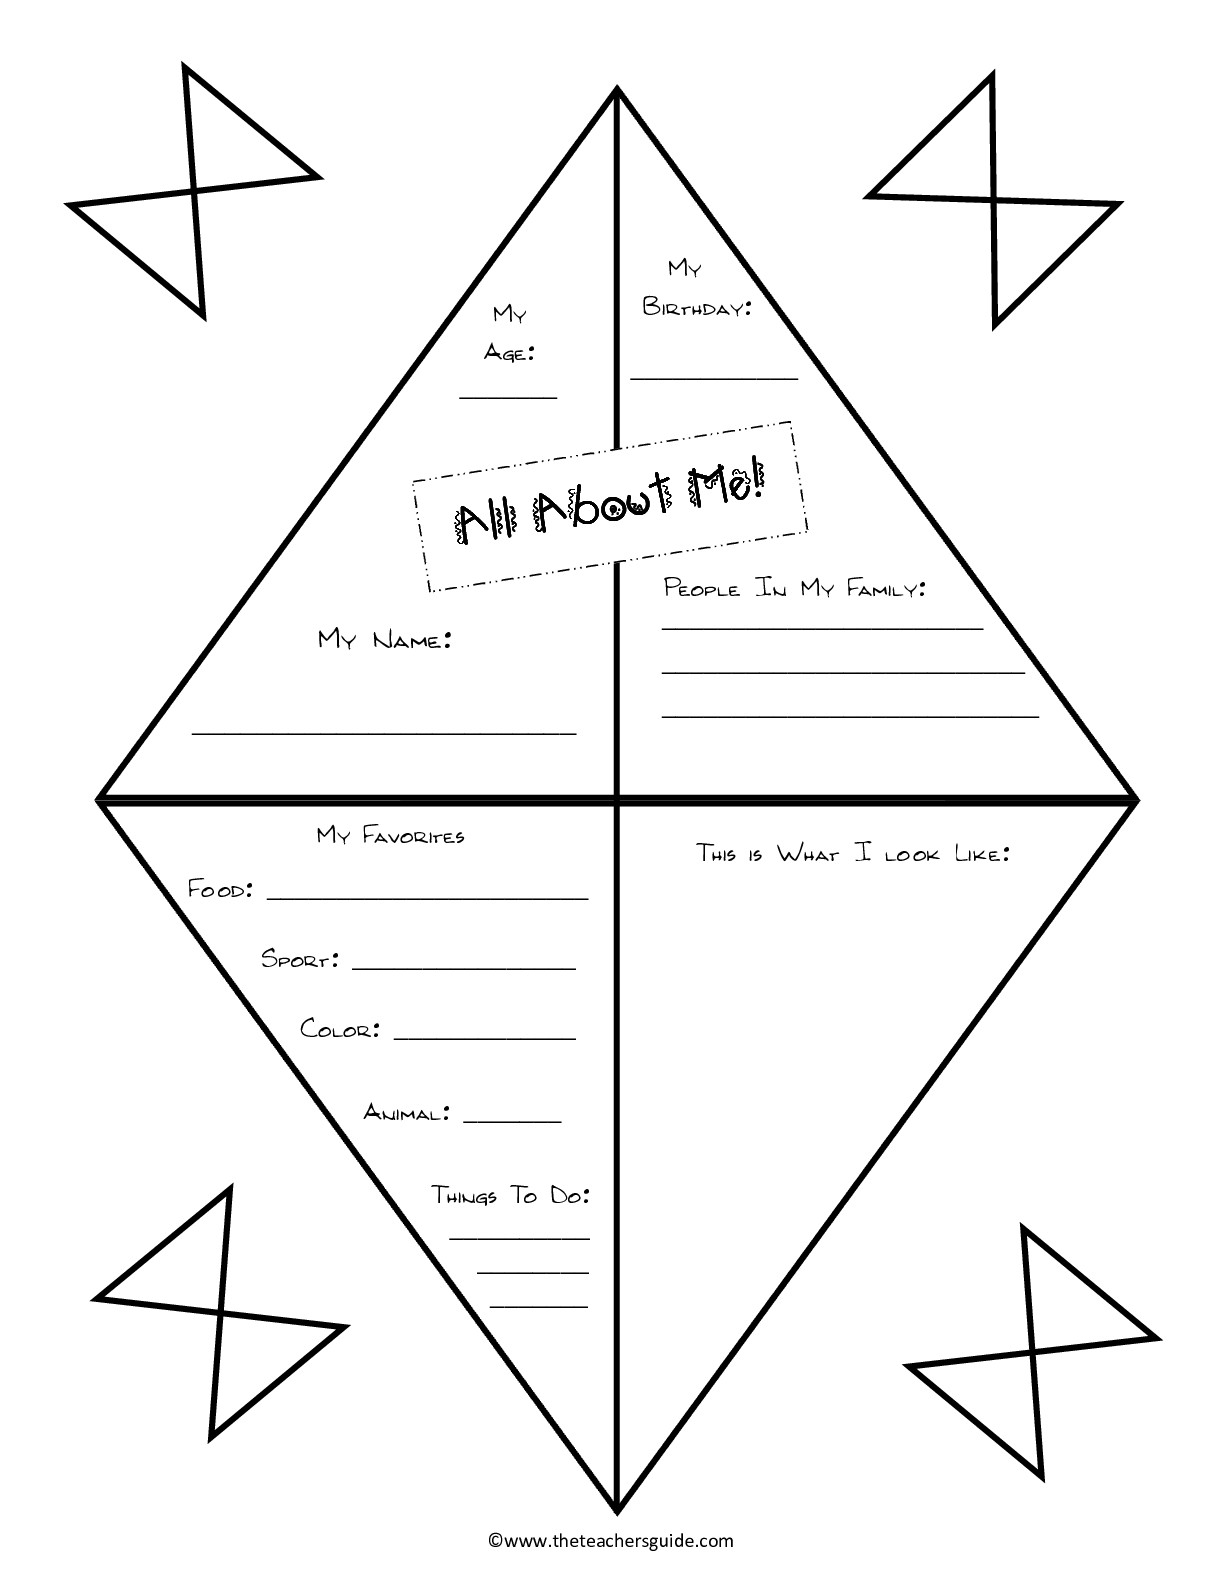 11 Best Images Of Student Scavenger Hunt Worksheets